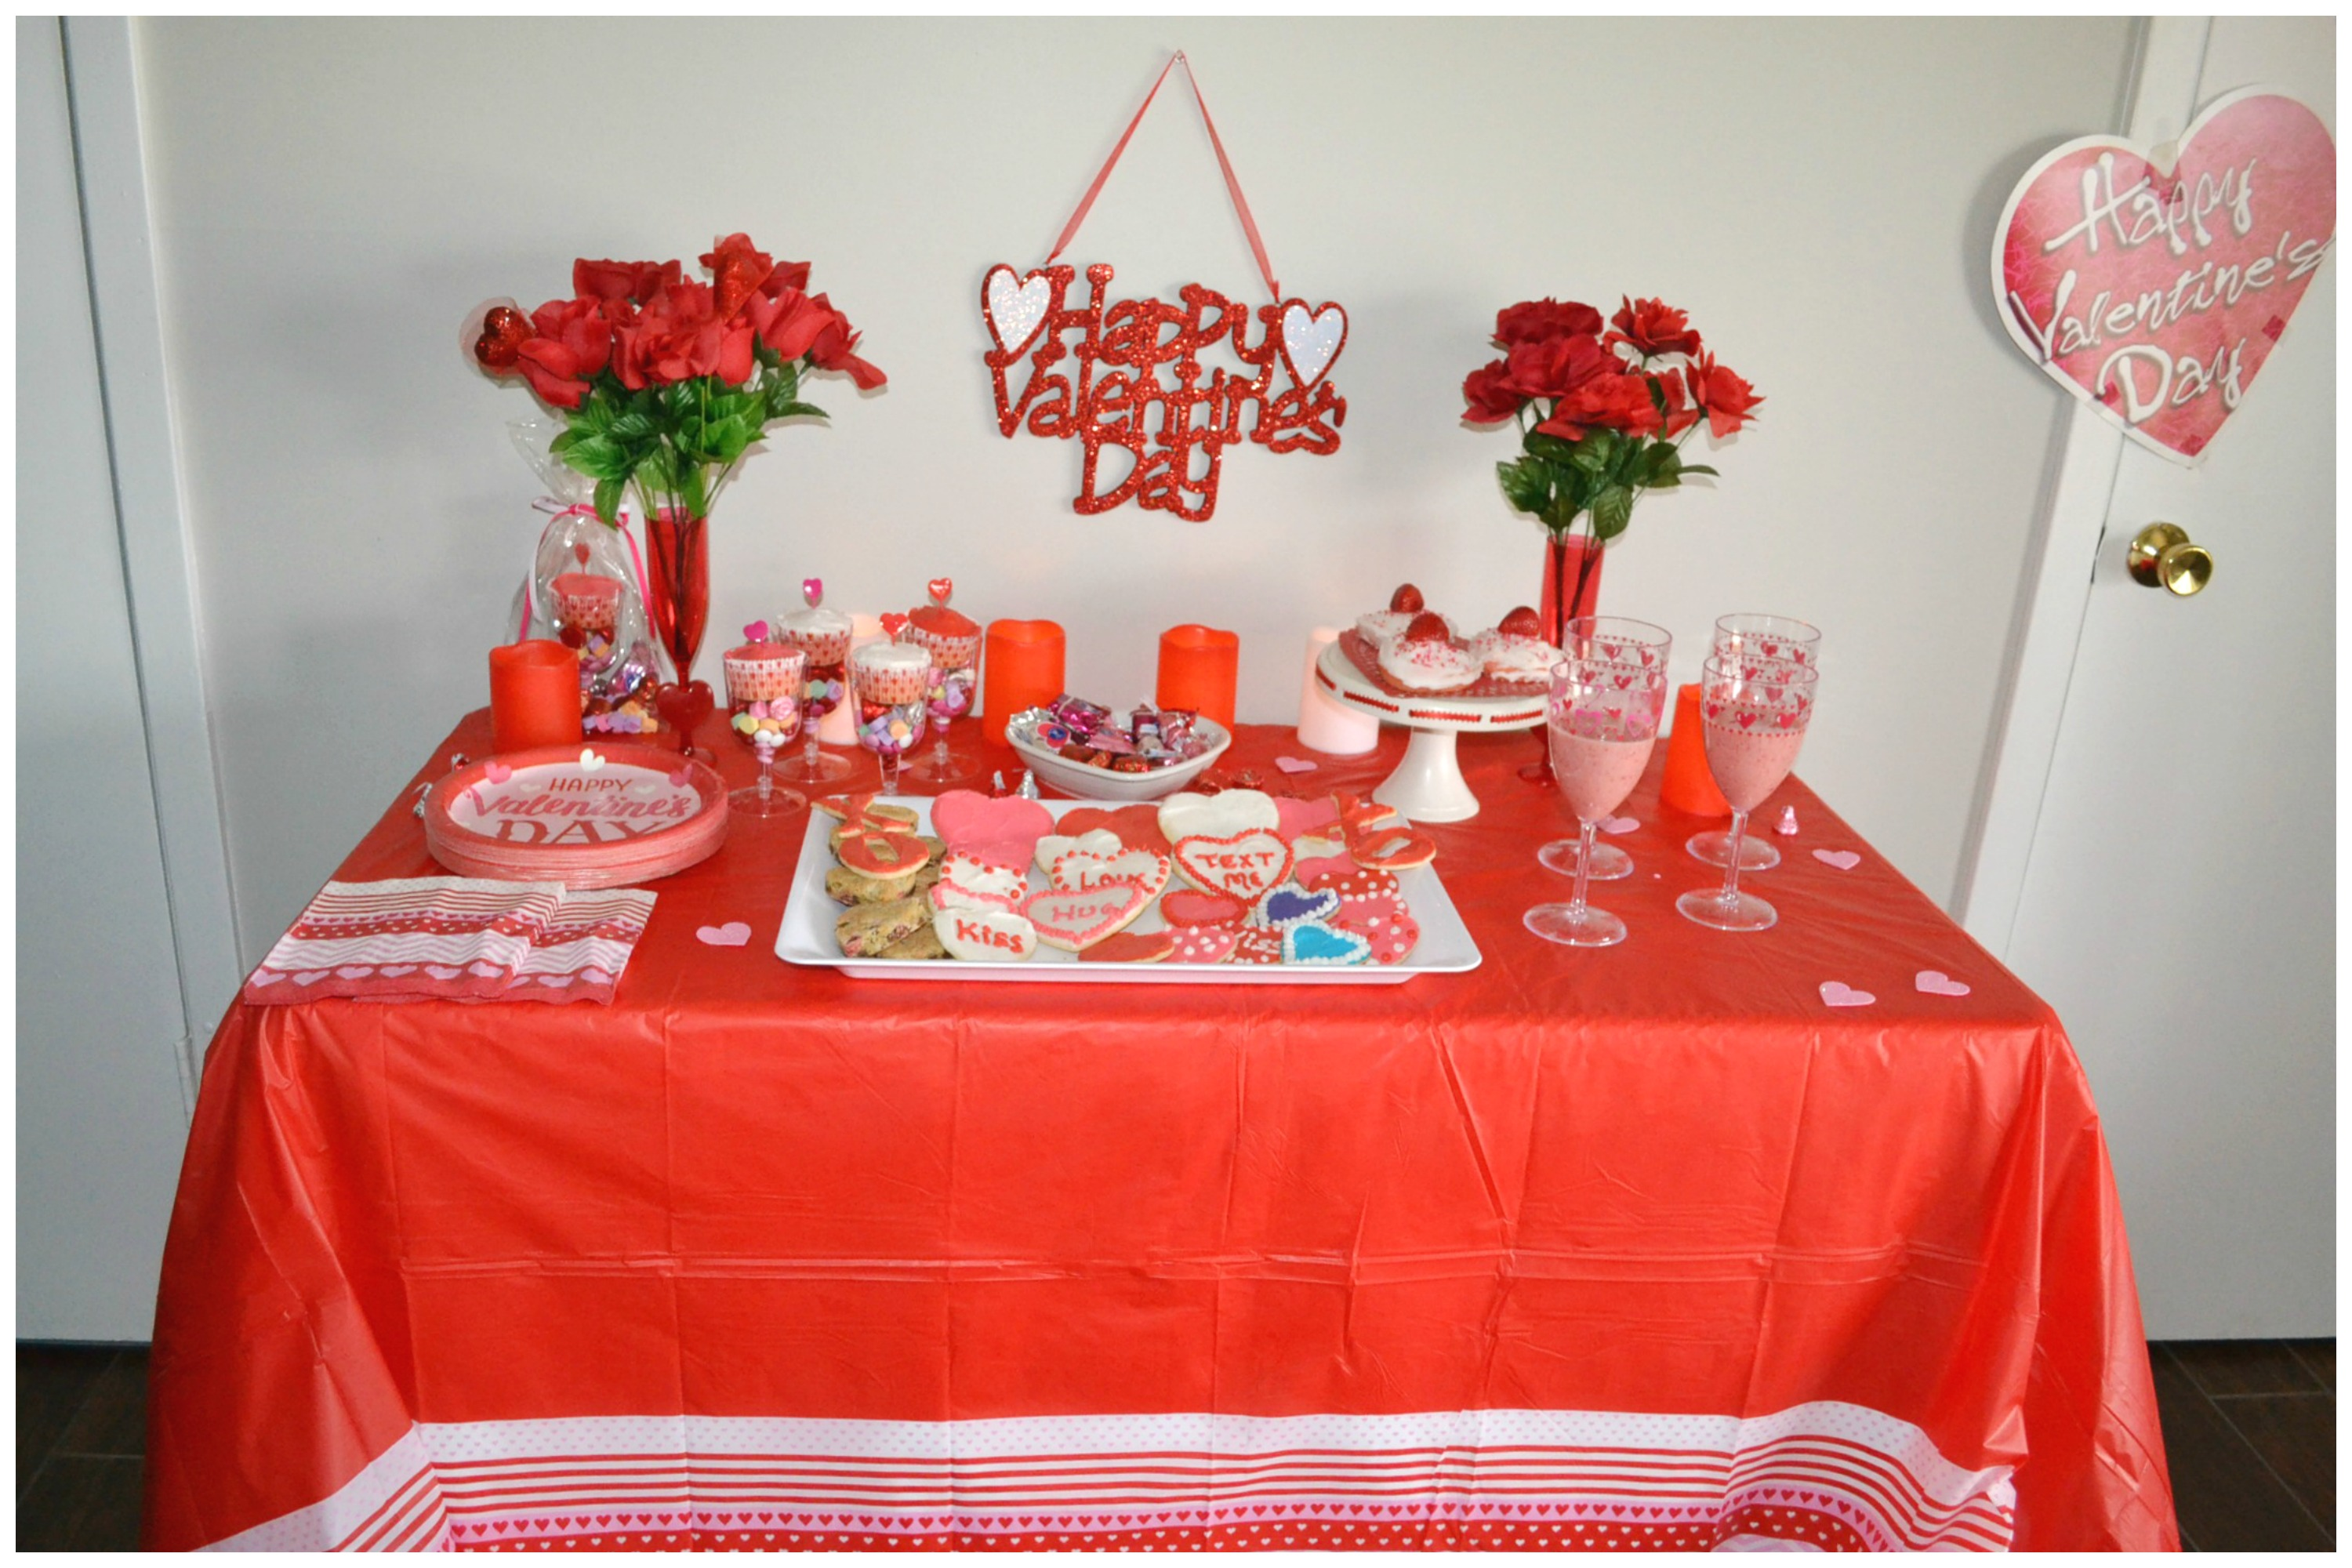 Valentine's Day ideas, inexpensive decorating, and sweet treats.